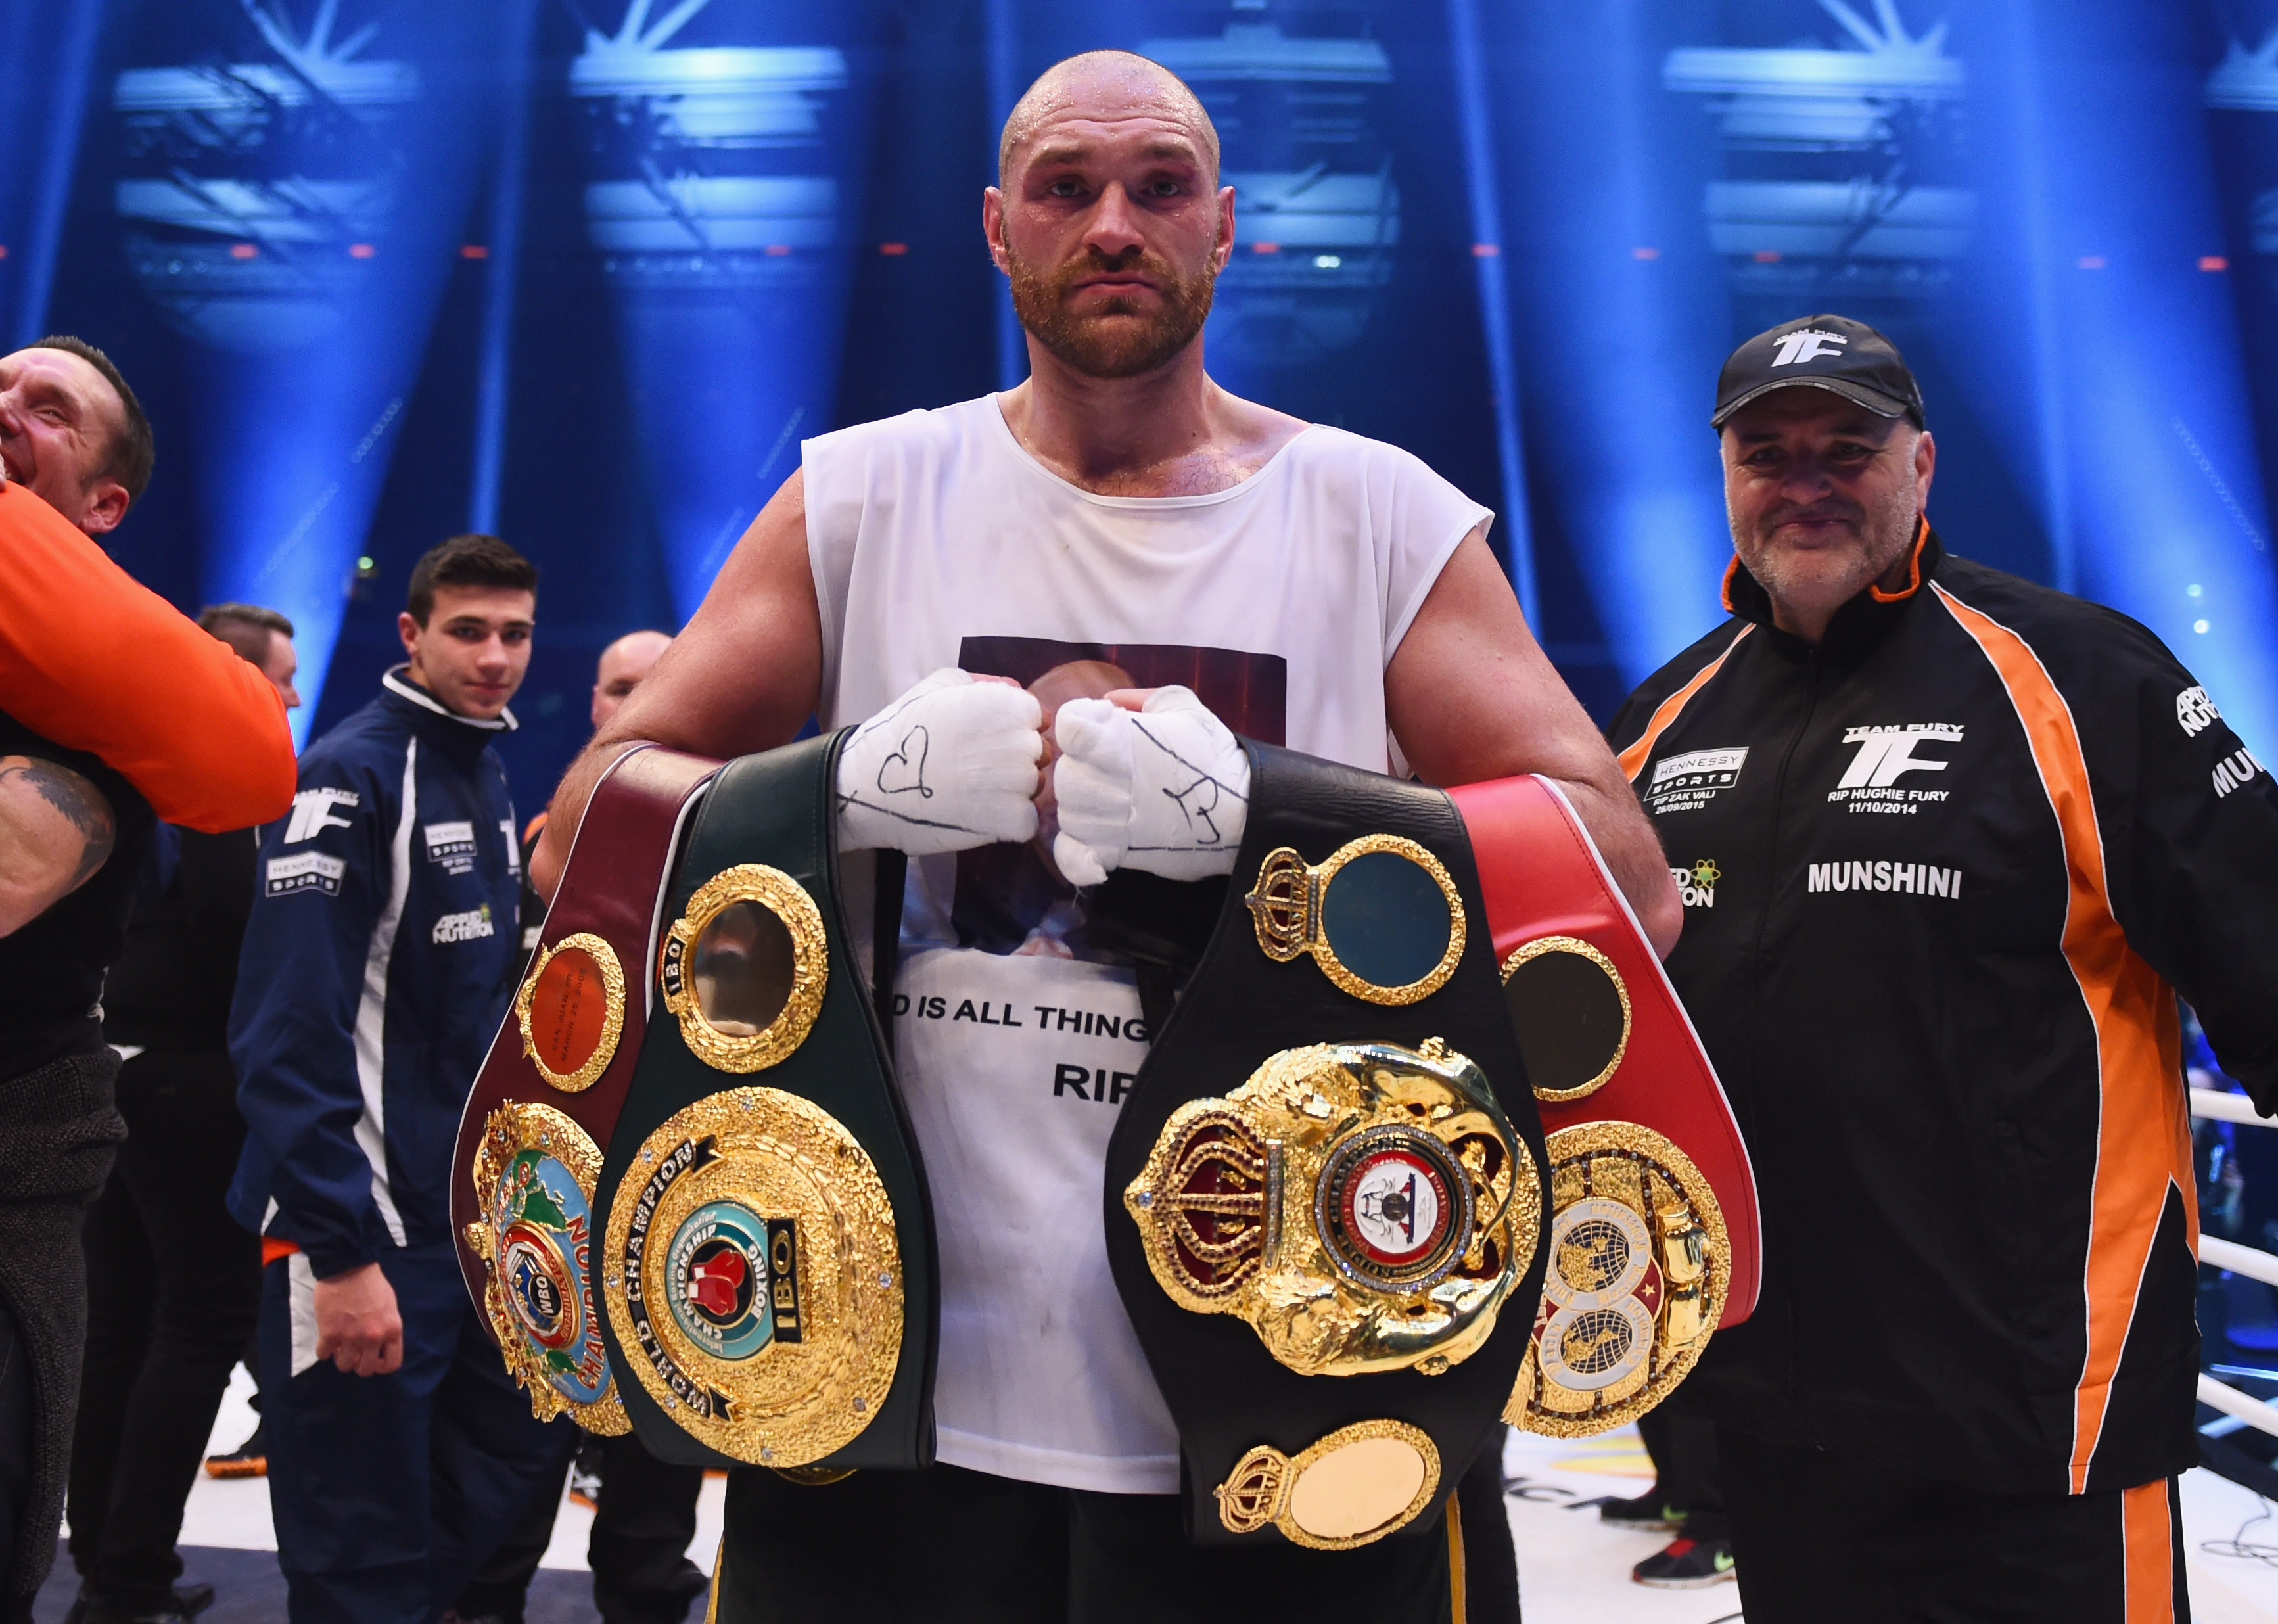 Boxing champion Billy Joe Saunders urges media and public to give Tyson Fury some 'space'